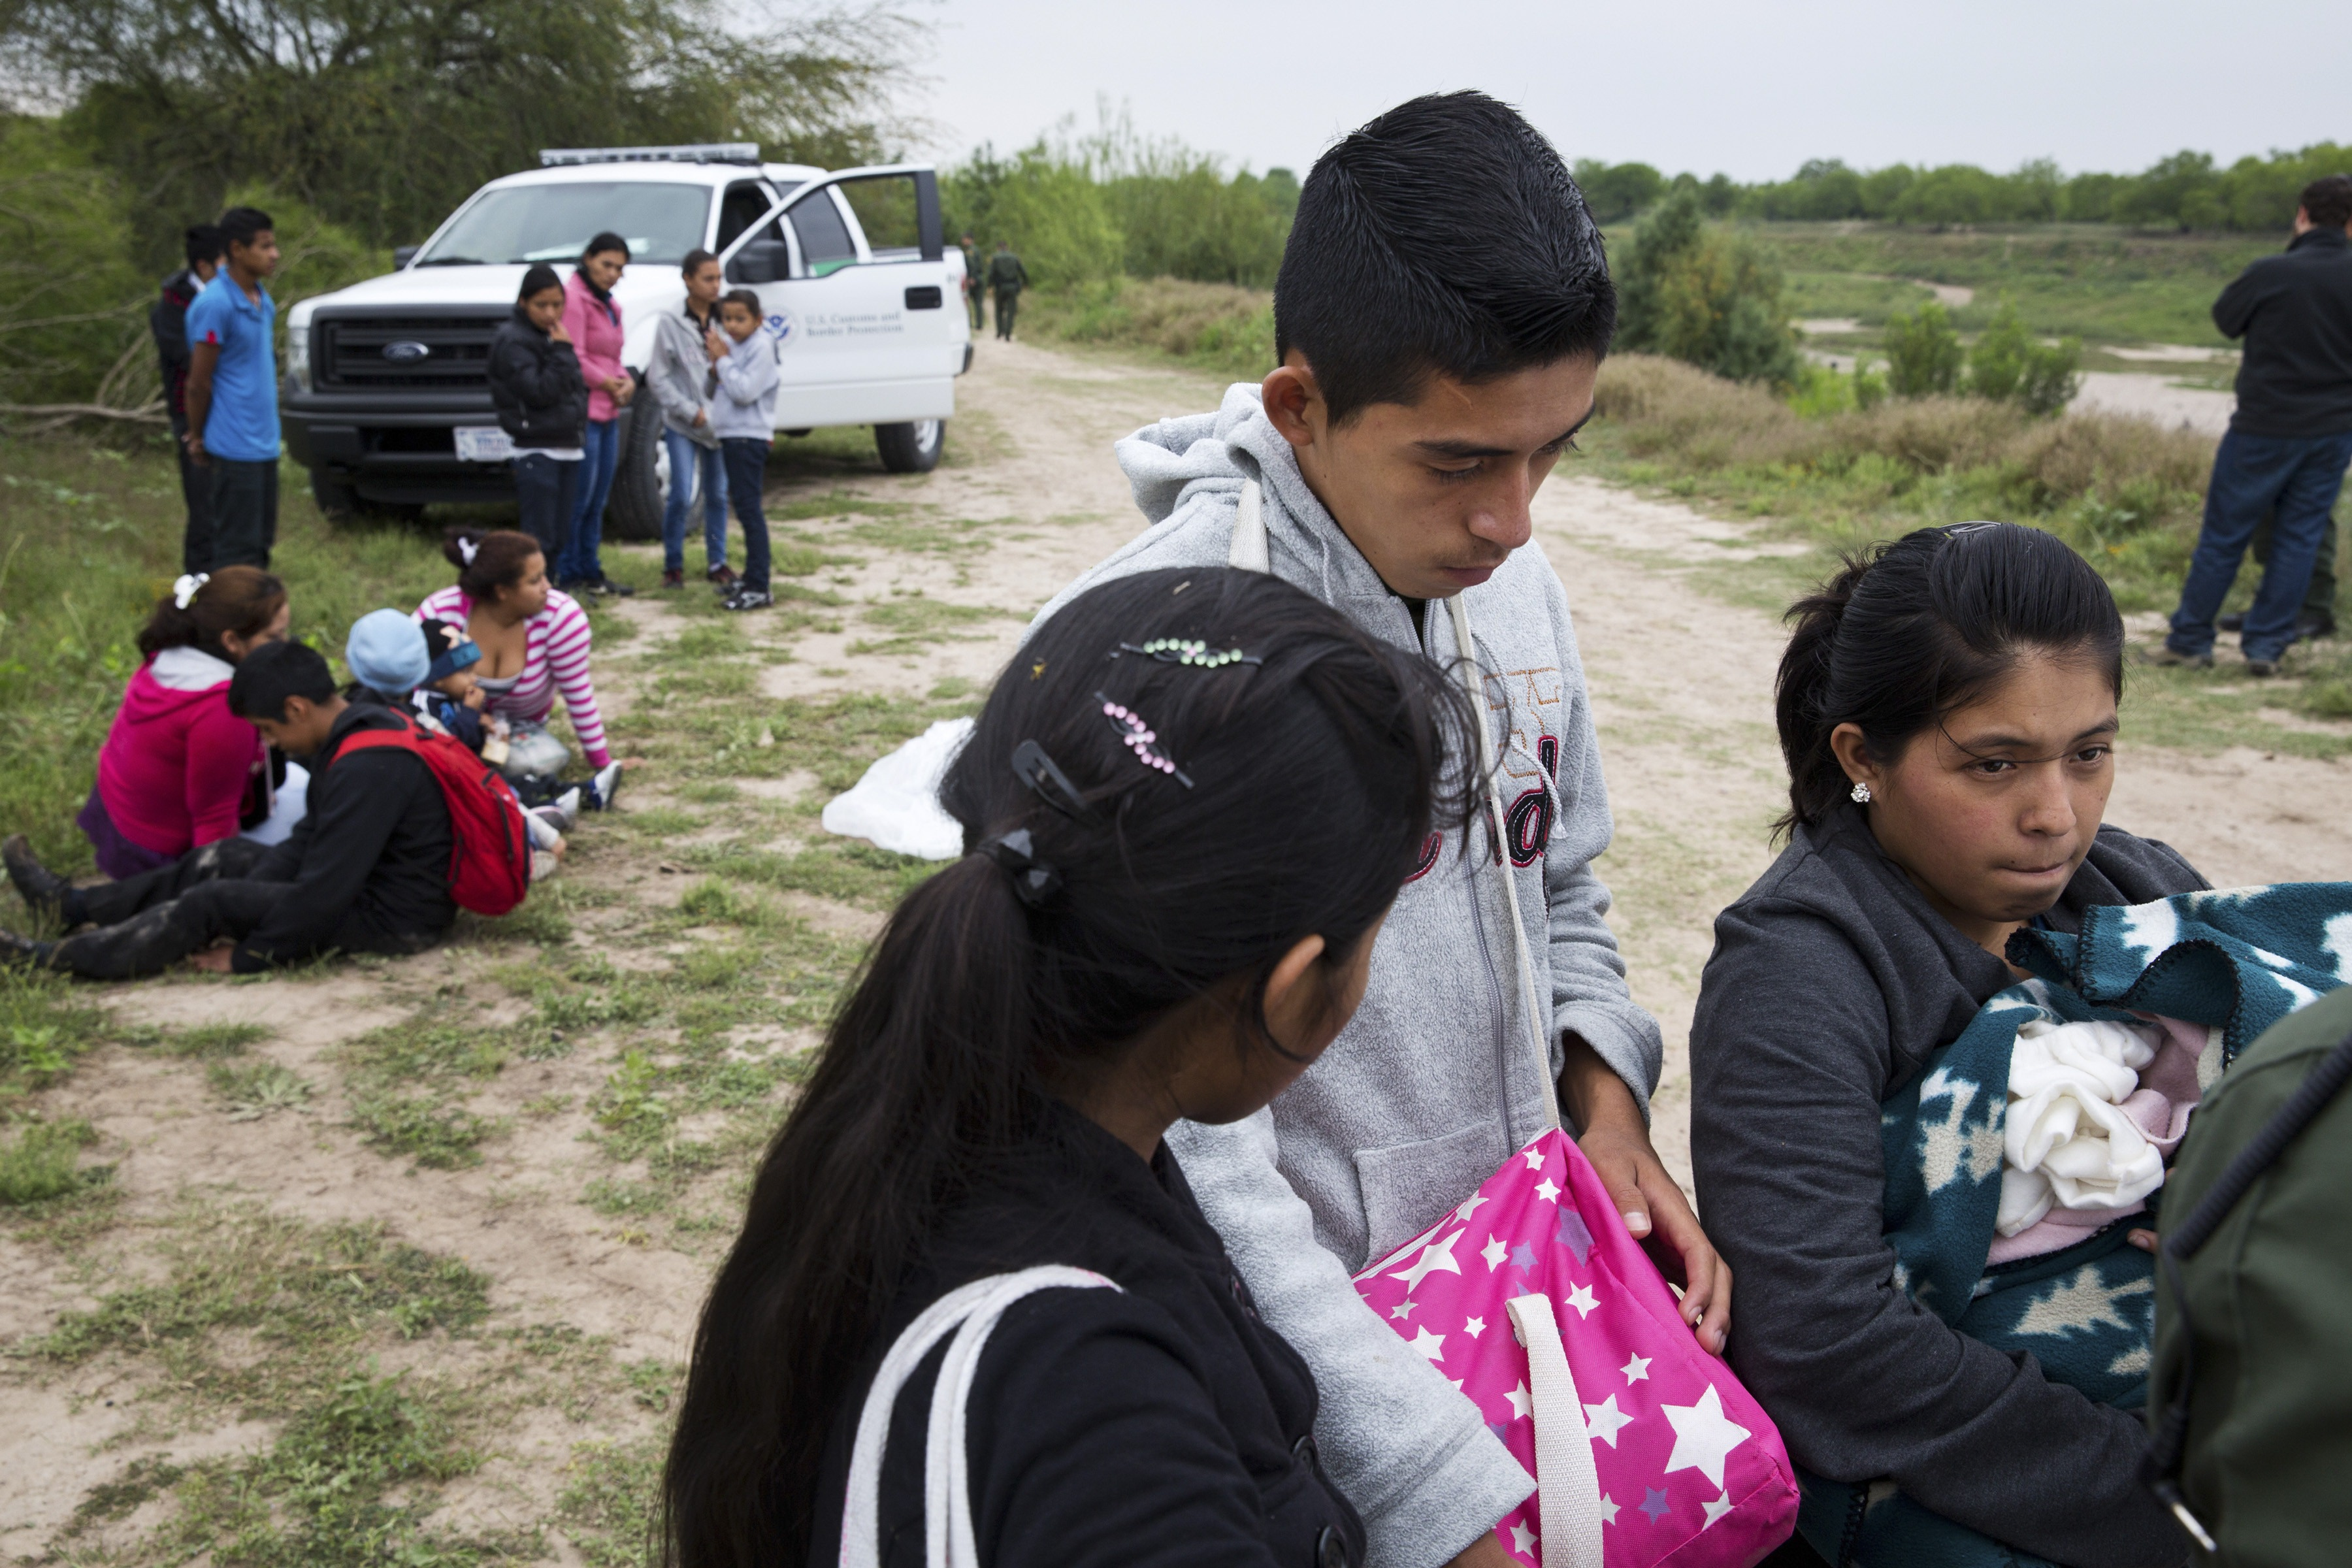 U.S. Border Patrol agents detain a group of young migrants from Honduras and Guatemala near the Anzalduas Dam at the Mexico-U.S. border in south Texas, March 25, 2014.